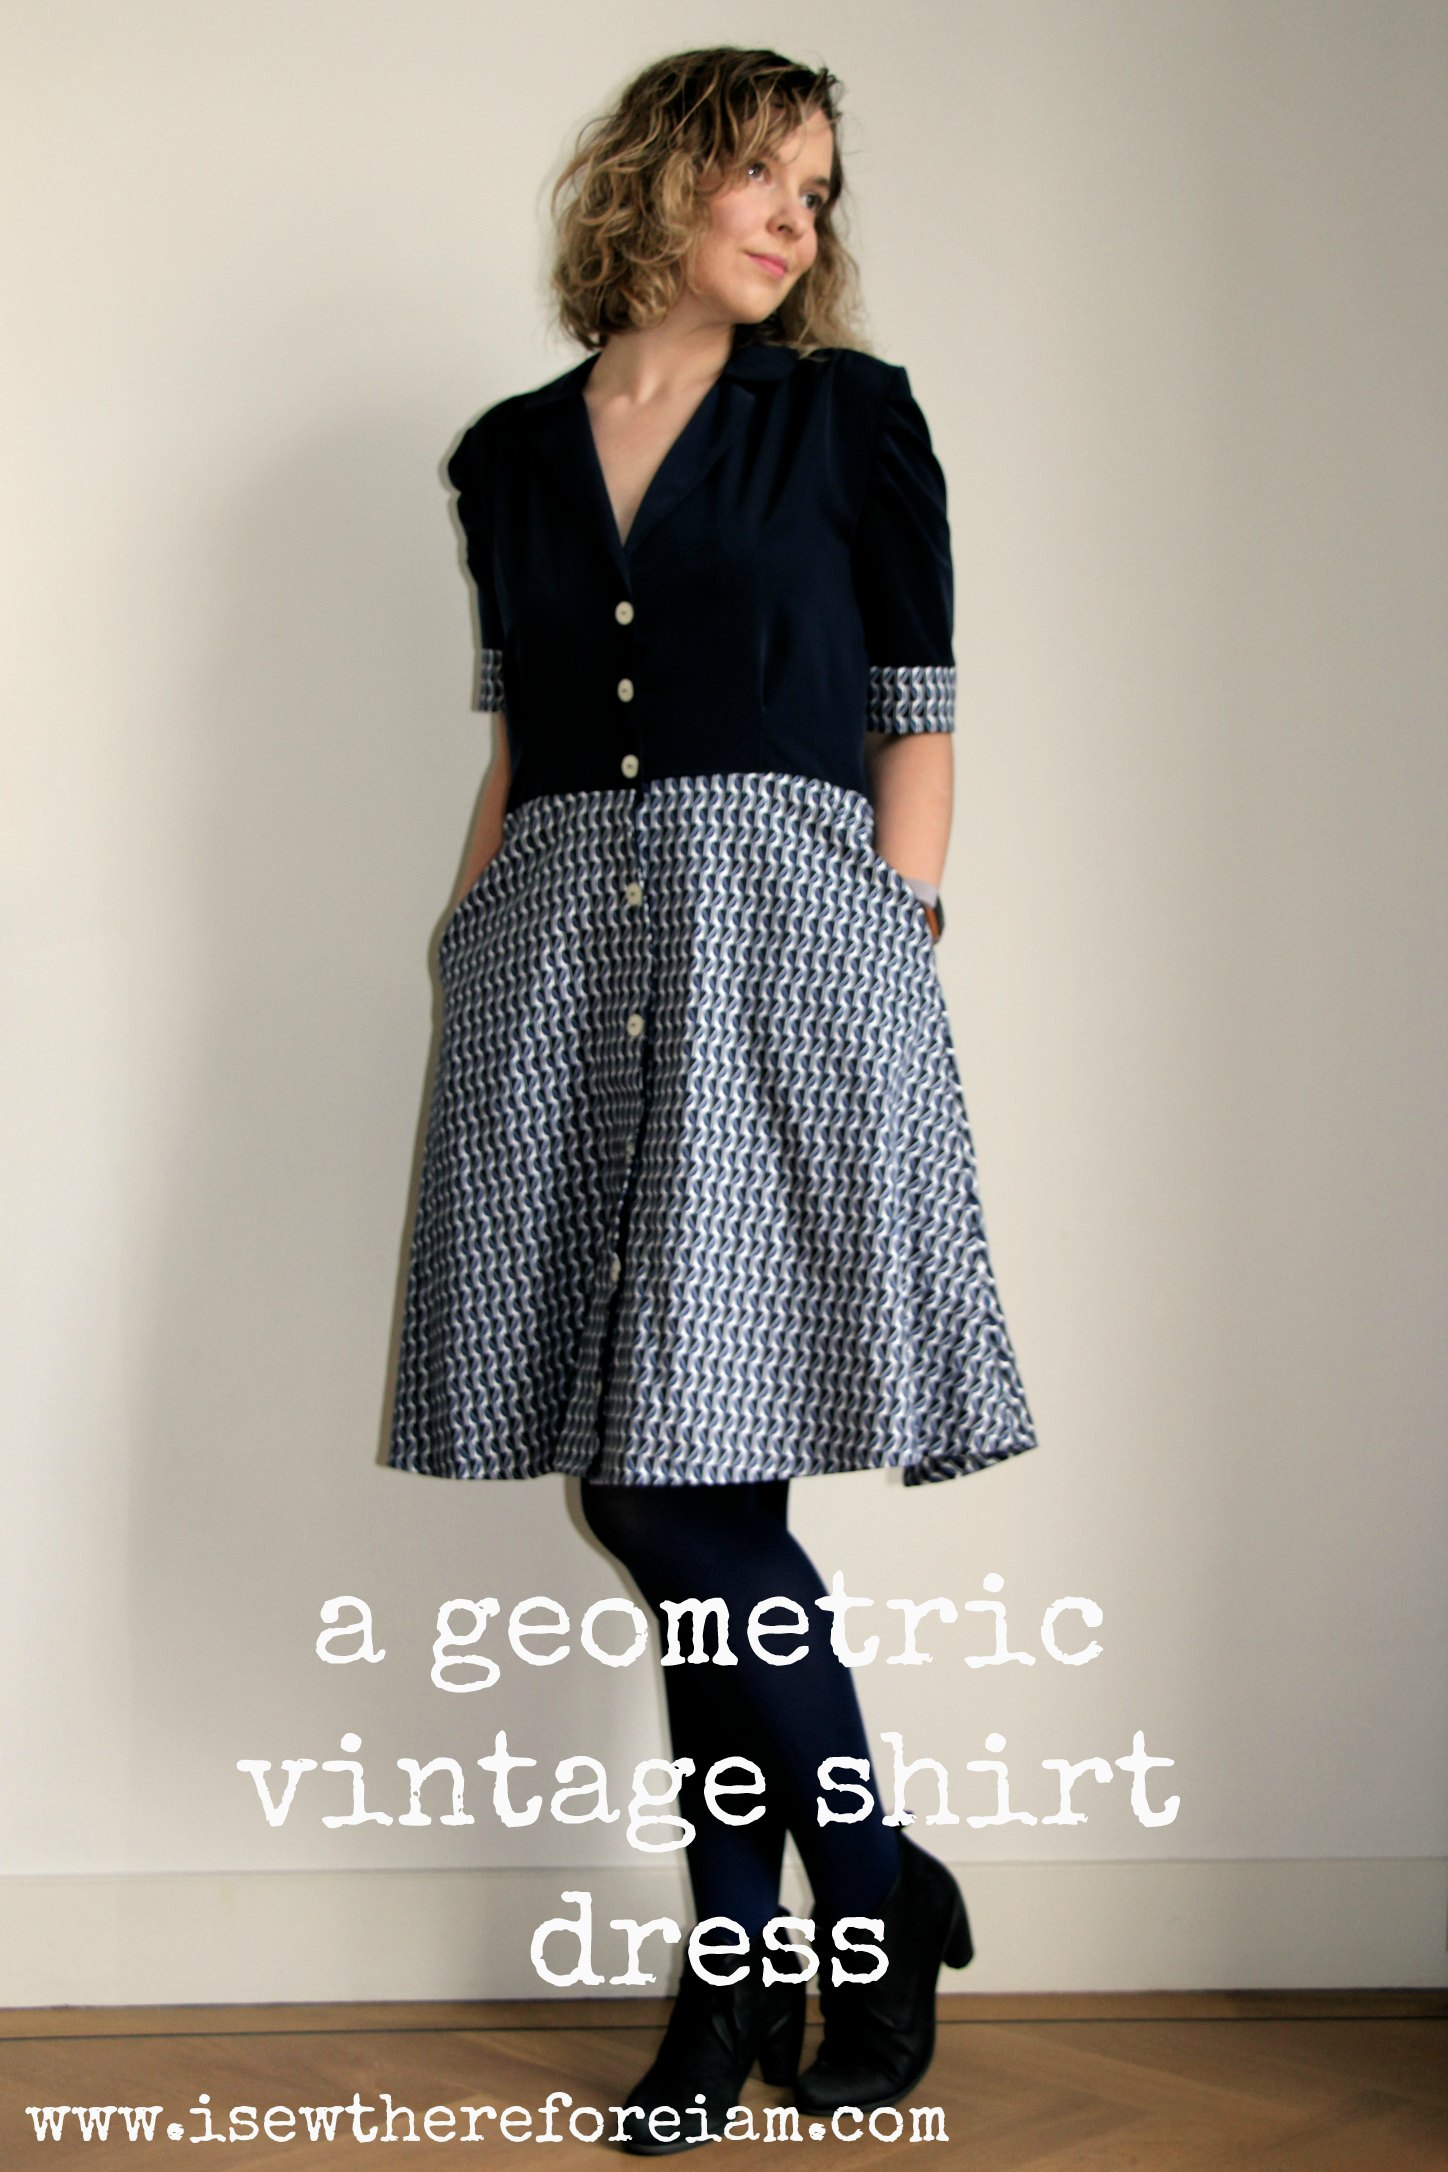 The Sew Over It Vintage Shirt Dress with contrats skirt and bodice, using navy and a geometric print